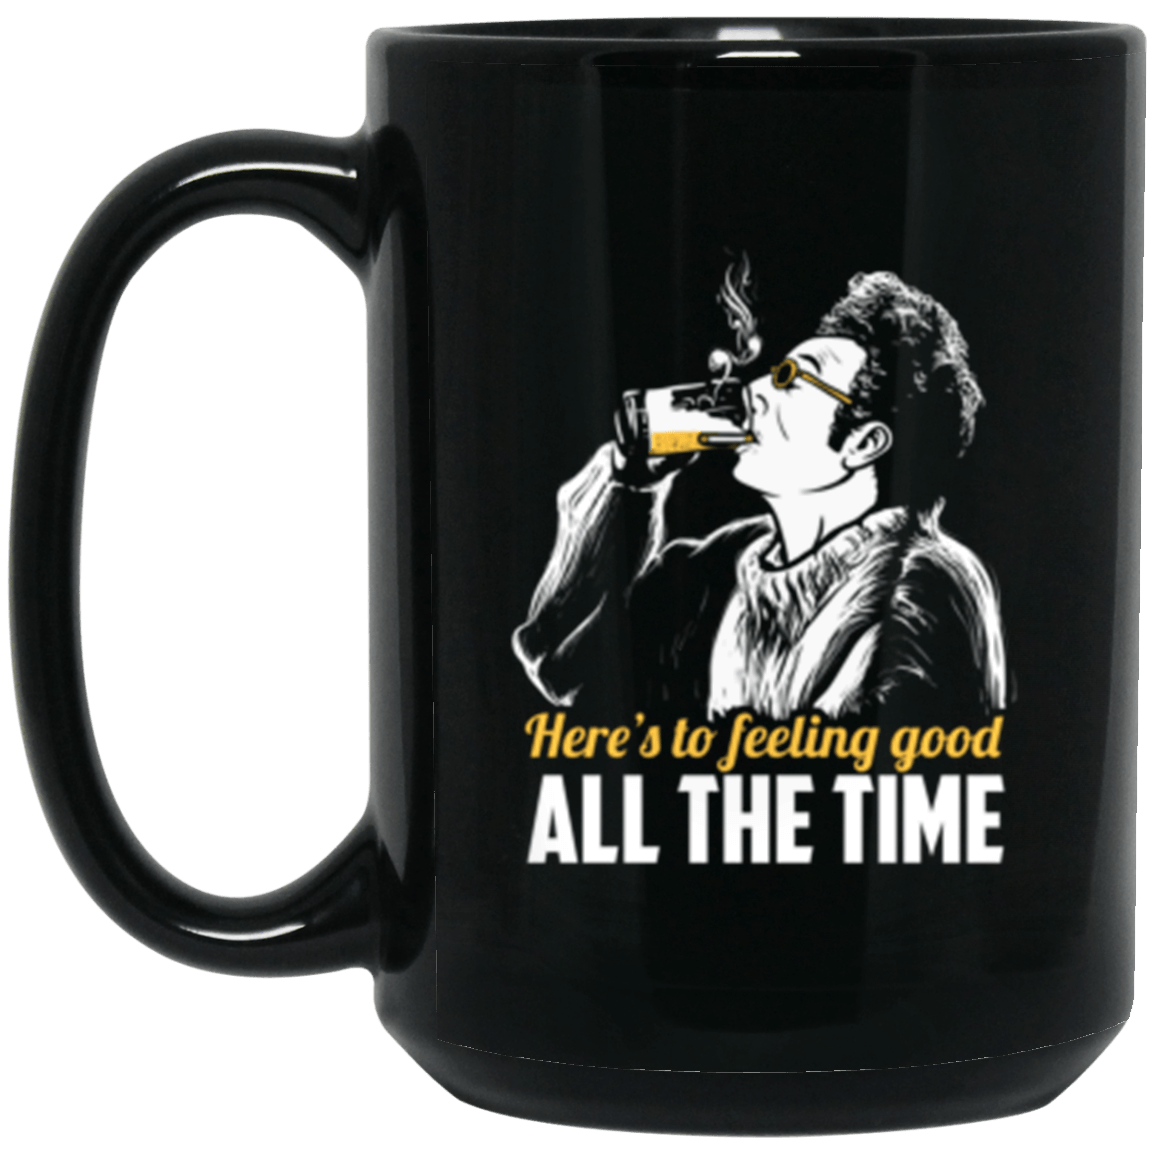 Feeling Good Black Mug 15oz (2-sided)